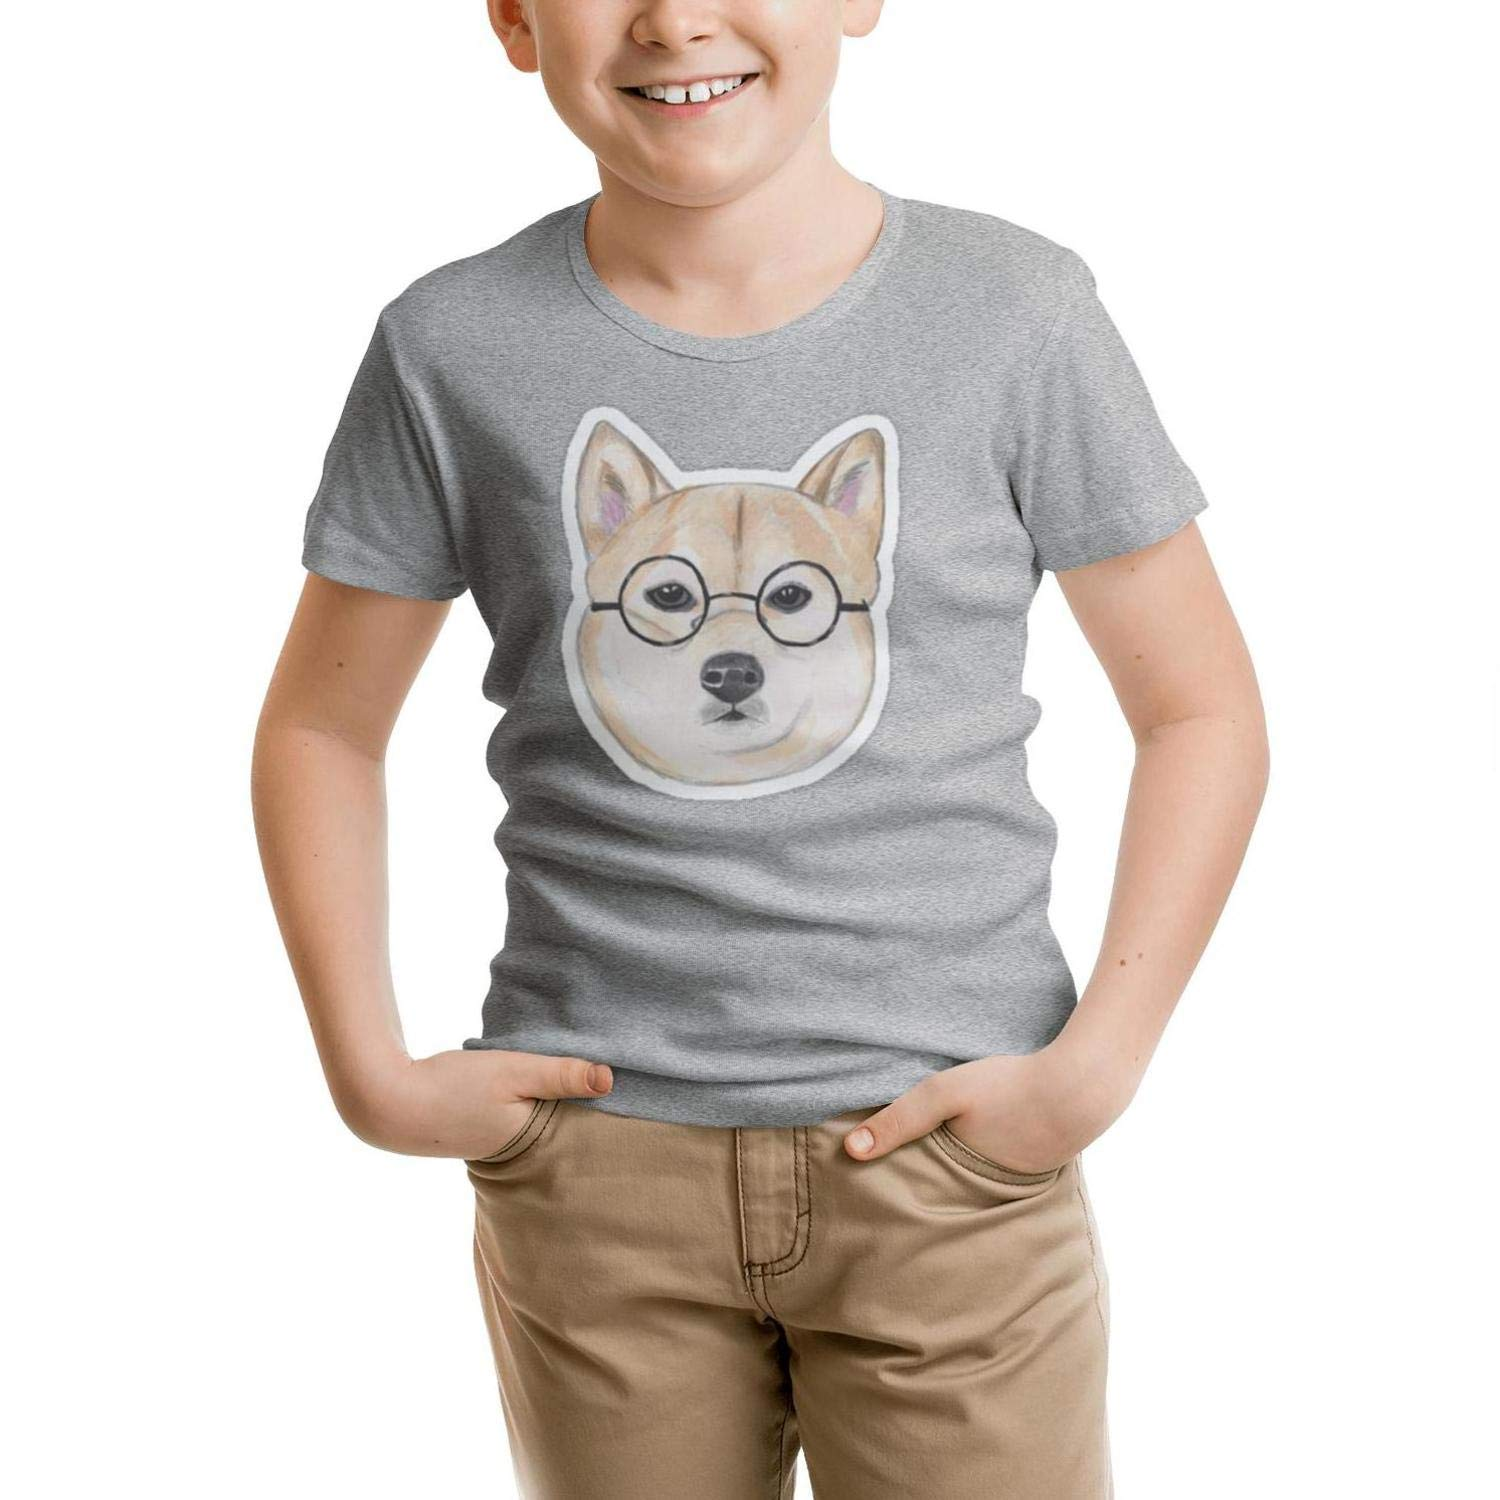 GGTHT Kid's Gray t Shirt Doge Face Glasses O-Neck Short Sleeve Cotton